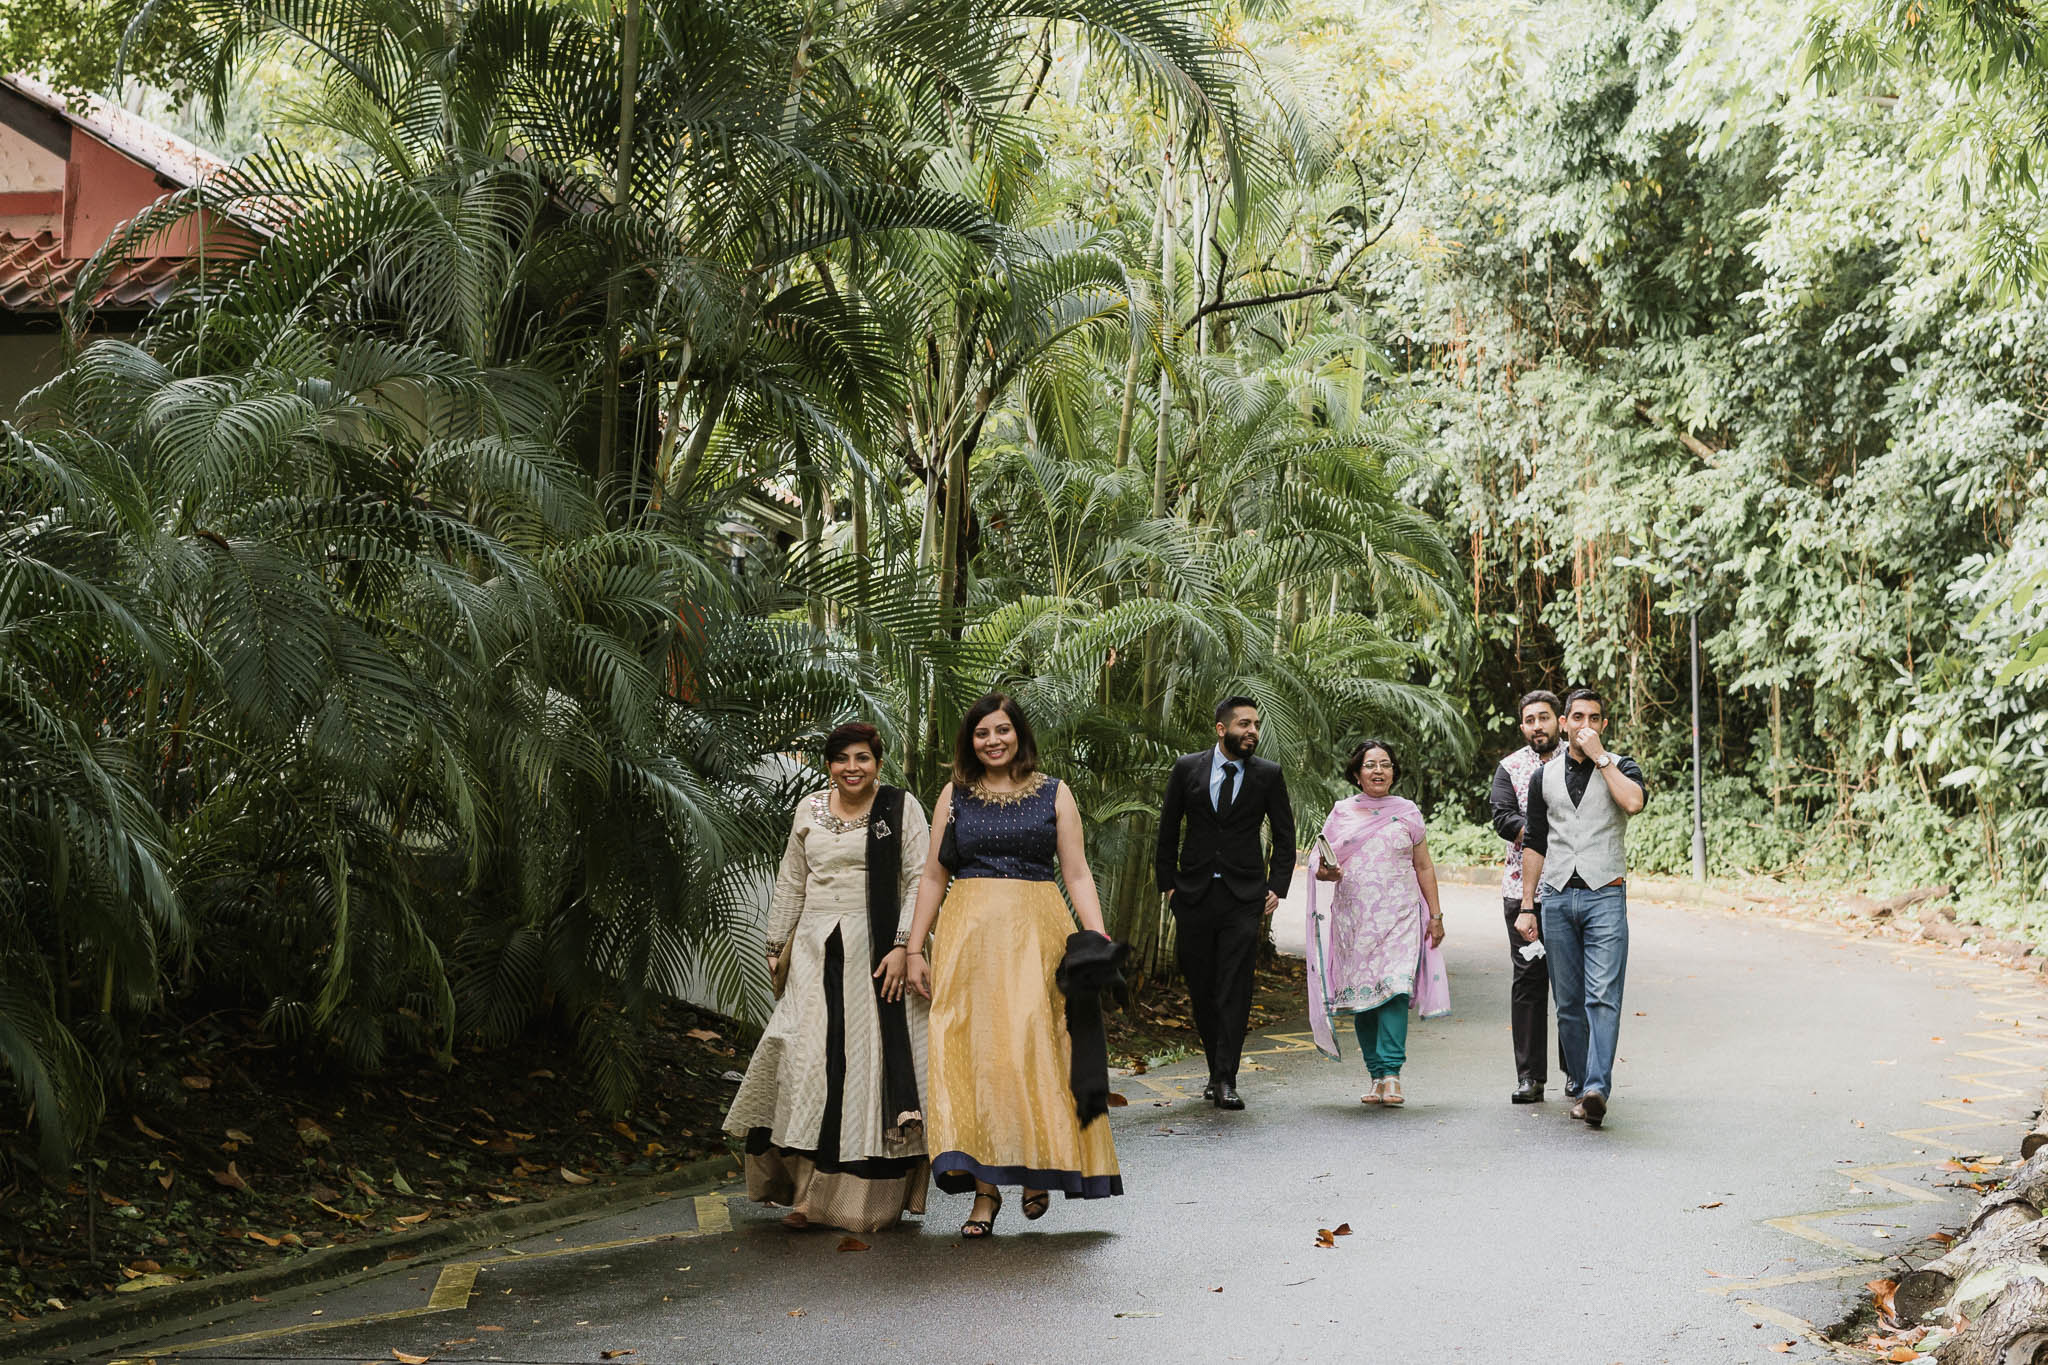 singapore-wedding-photographer-madethese-laremy-priscilla-wedding-066.jpg